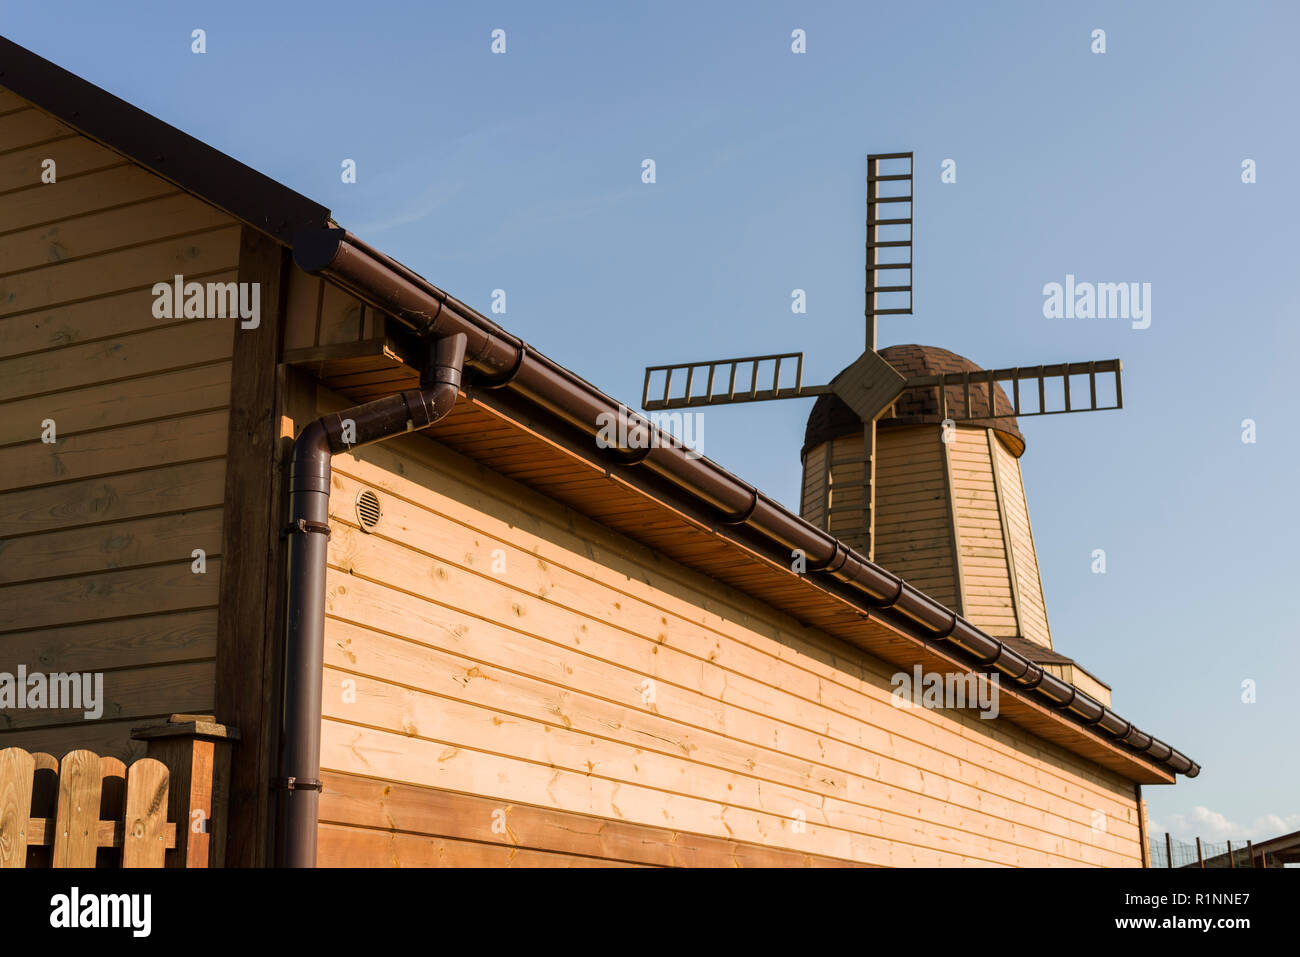 drainpipe on the edge of a wooden building - Stock Image